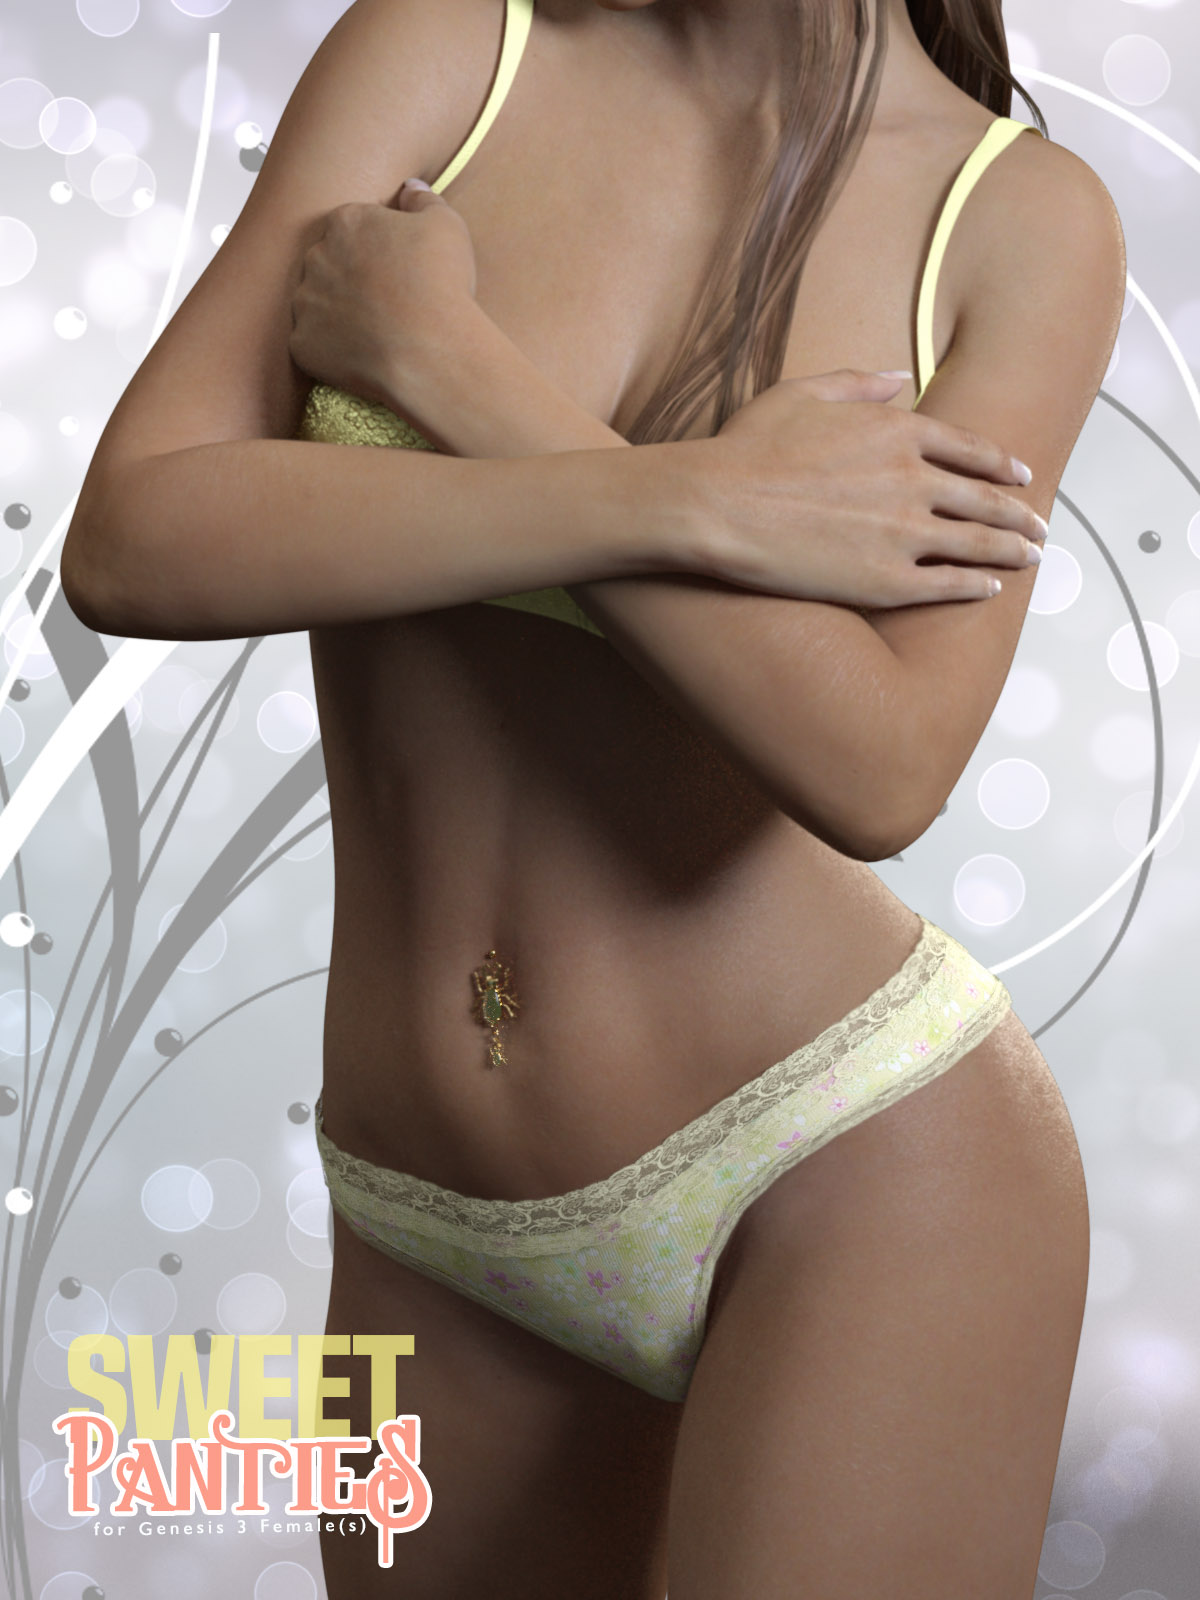 Sweet Panties for Genesis 3 Females by xtrart-3d